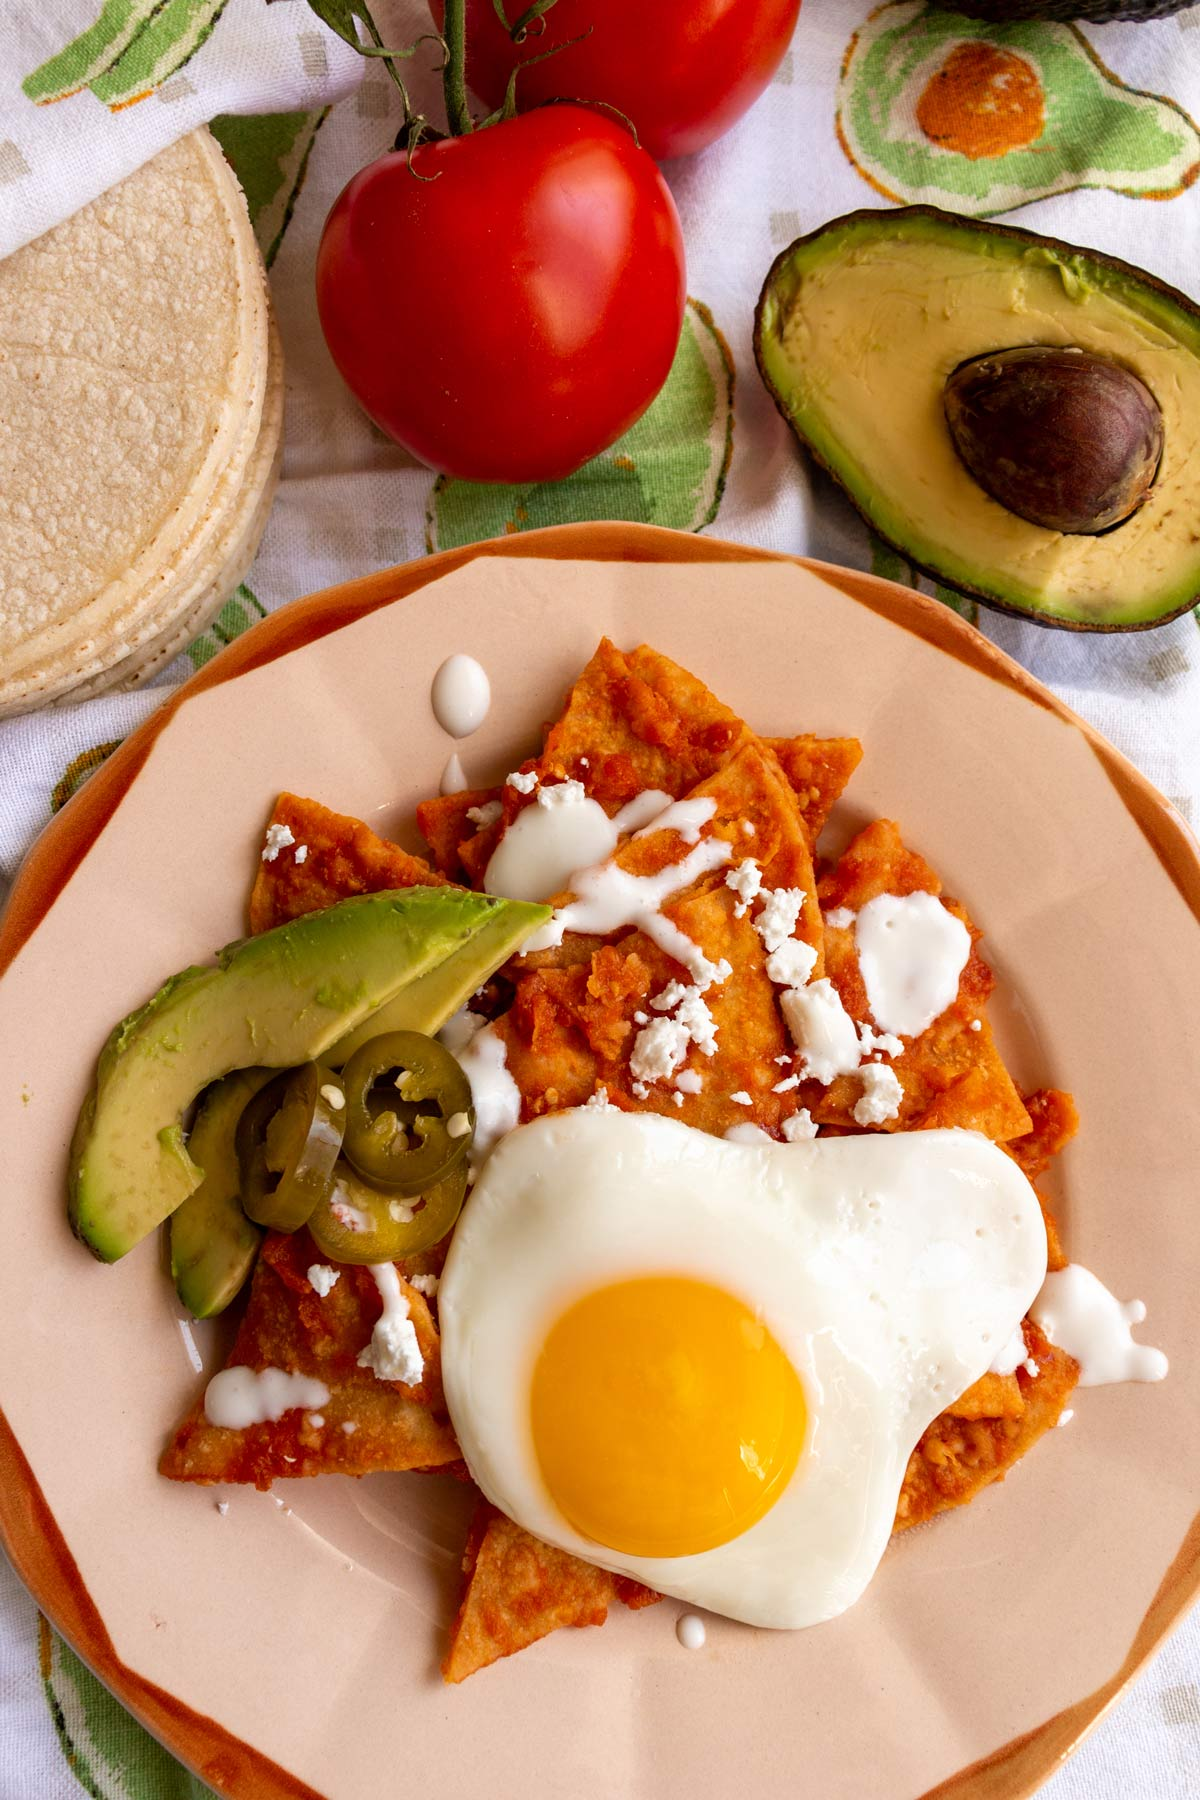 A plate of chilaquiles with corn tortillas, tomatoes, and avocado next to it.